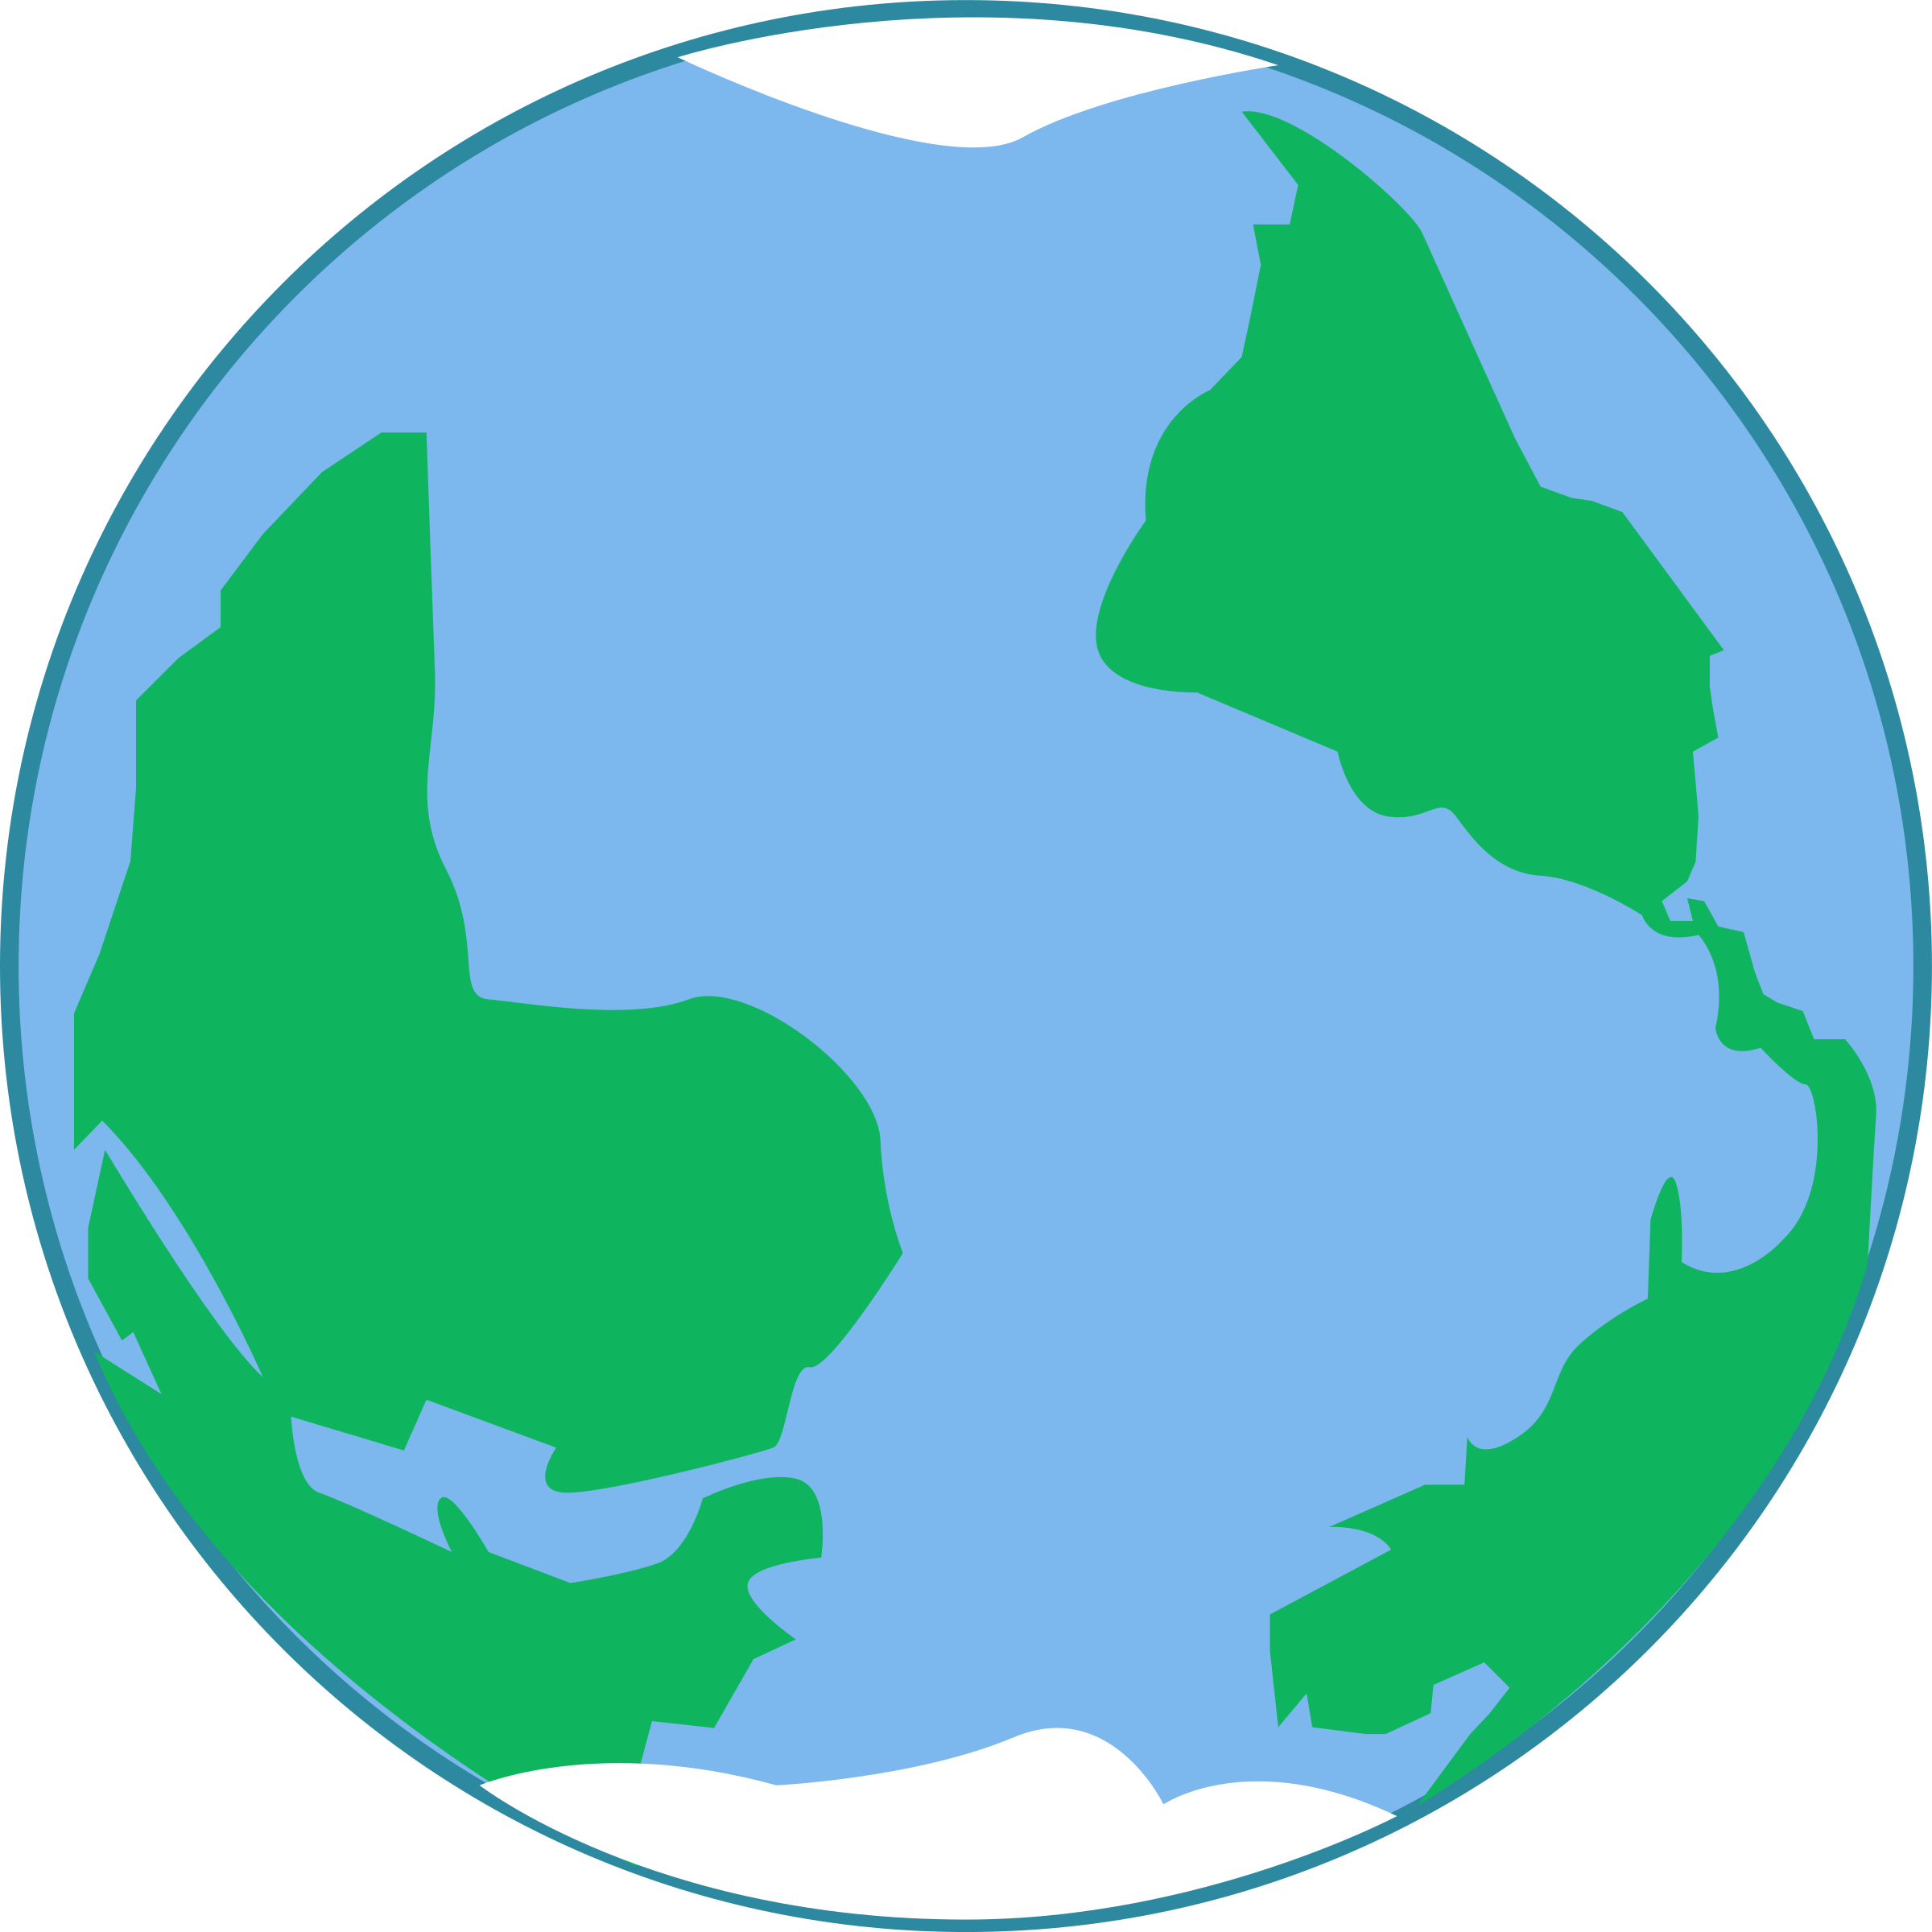 World map clipart at getdrawings free for personal use world 2400x2400 clipart gumiabroncs Choice Image